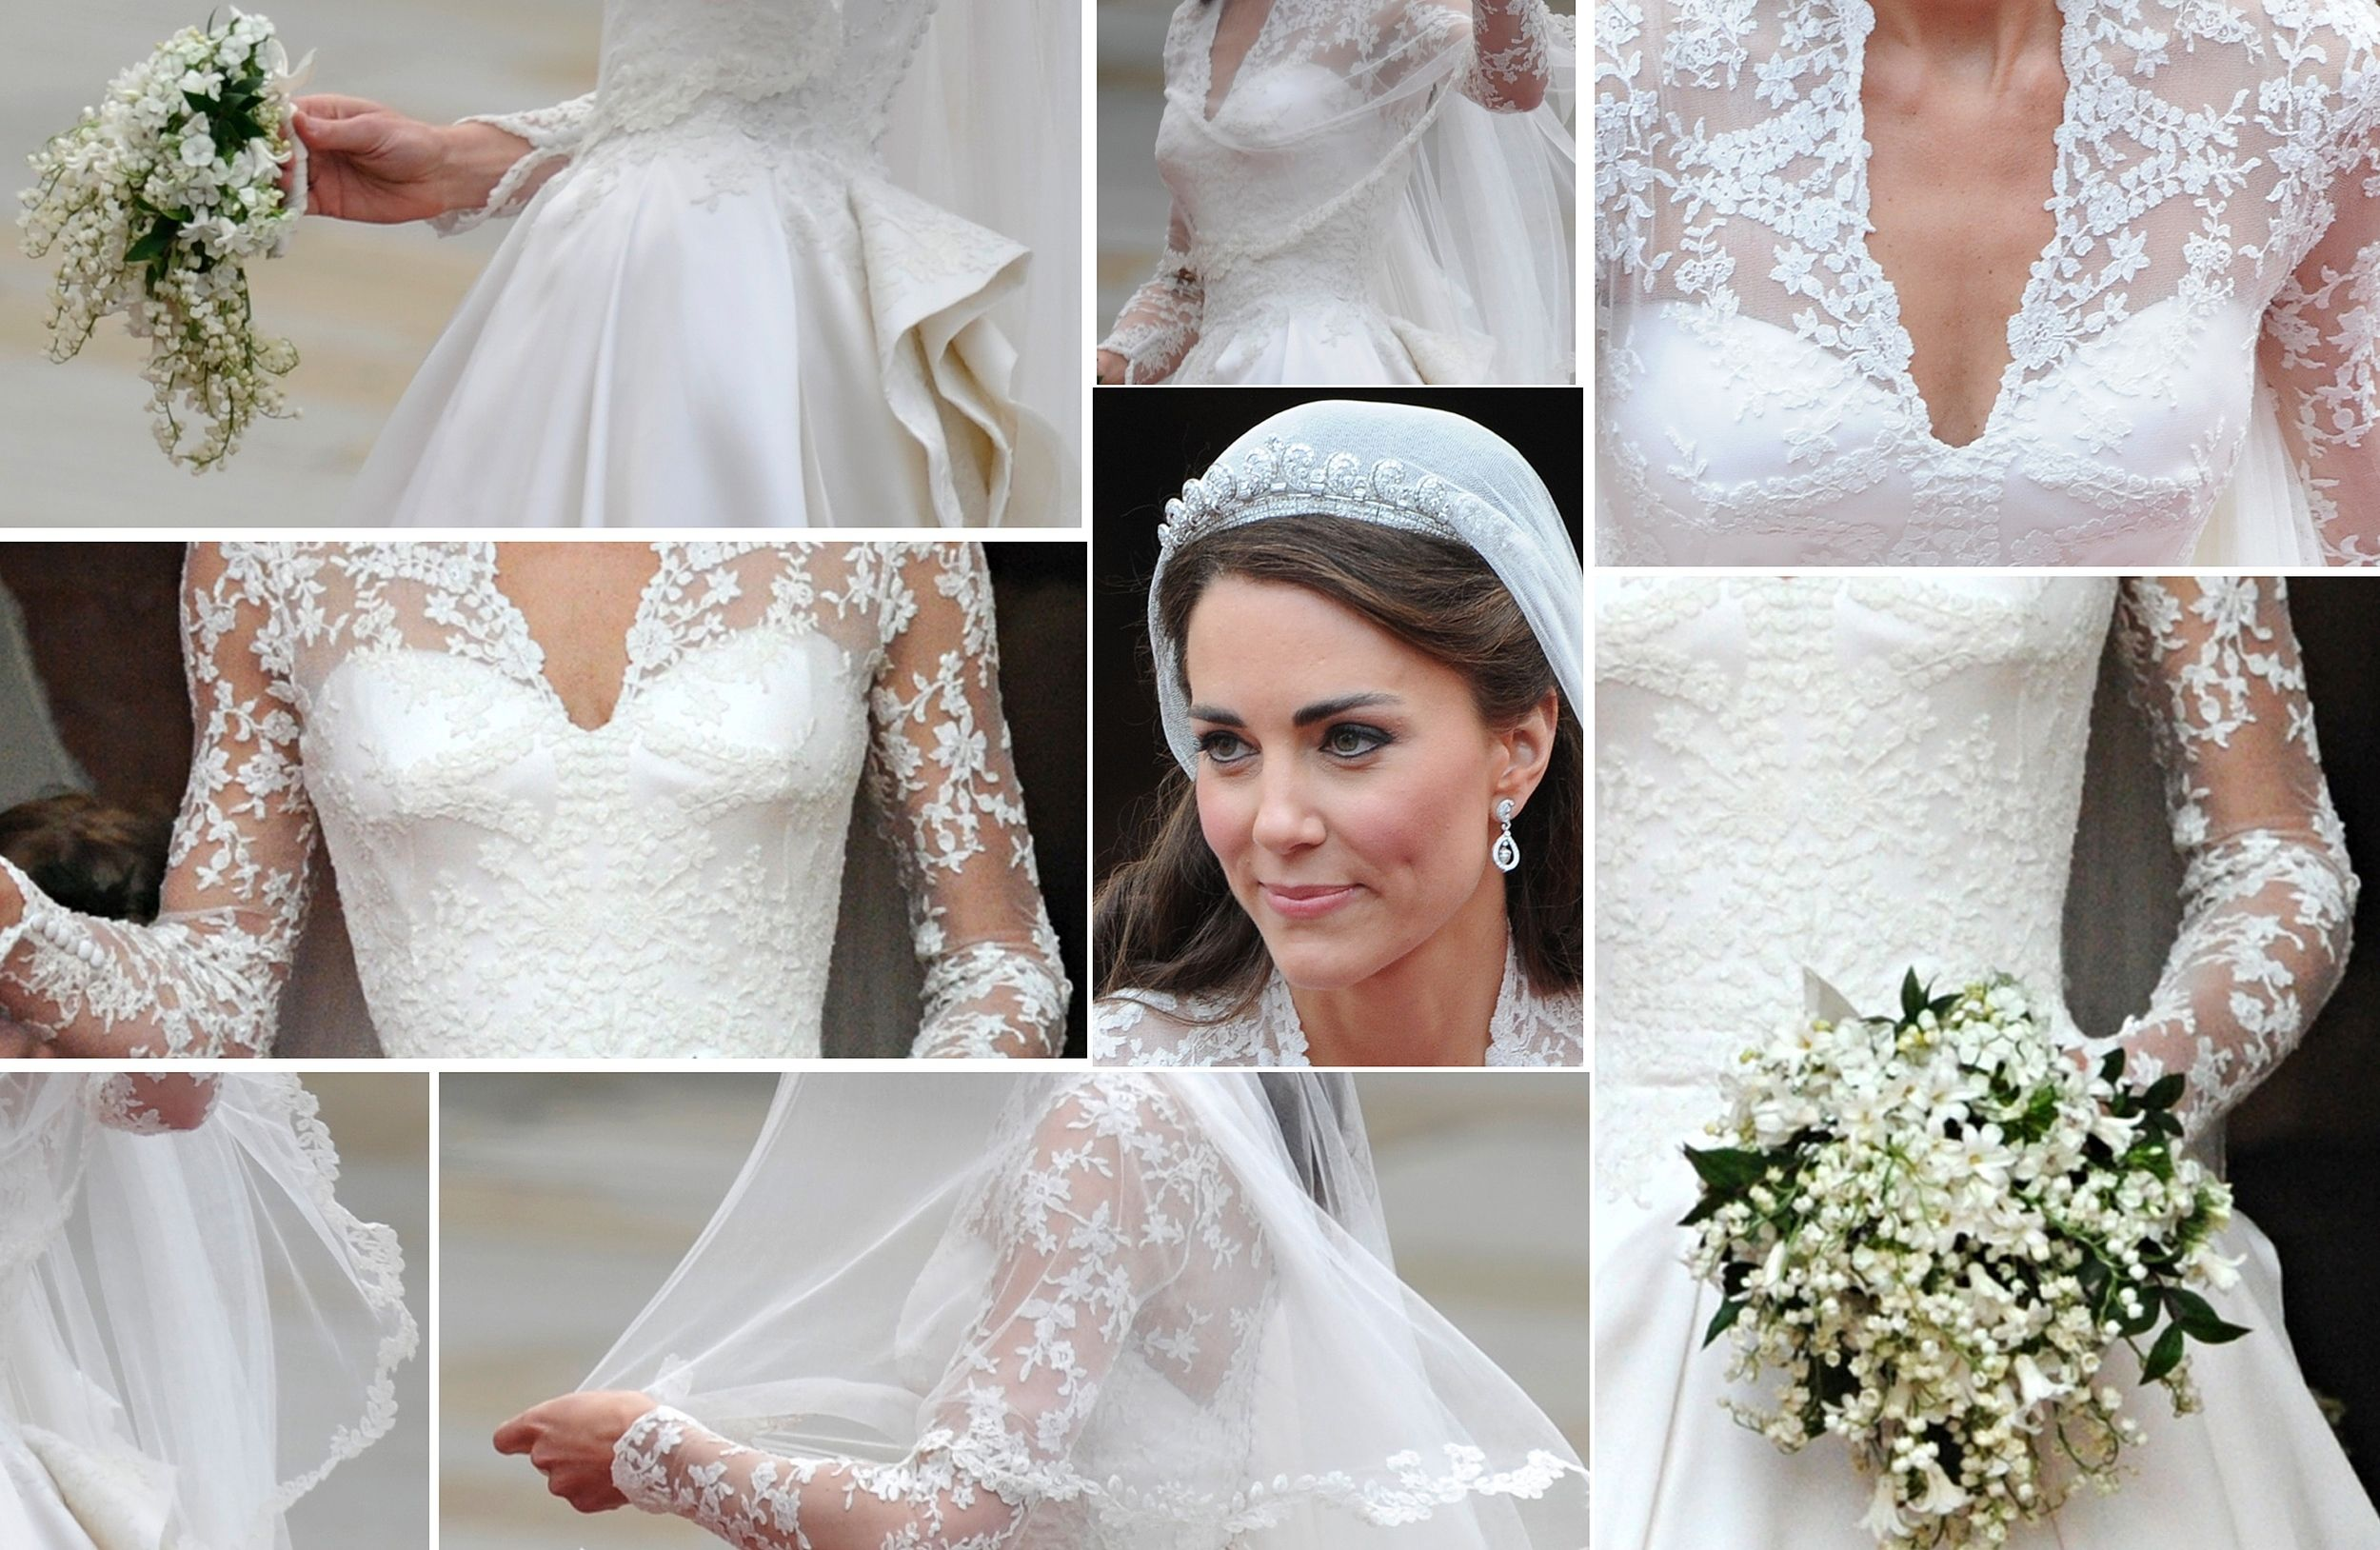 Why Meghan Markle And Kate Middleton S Wedding Invitations Differ In One Significant Way Kate Middleton Wedding Dress Kate Middleton Wedding Kate Wedding Dress [ jpg ]